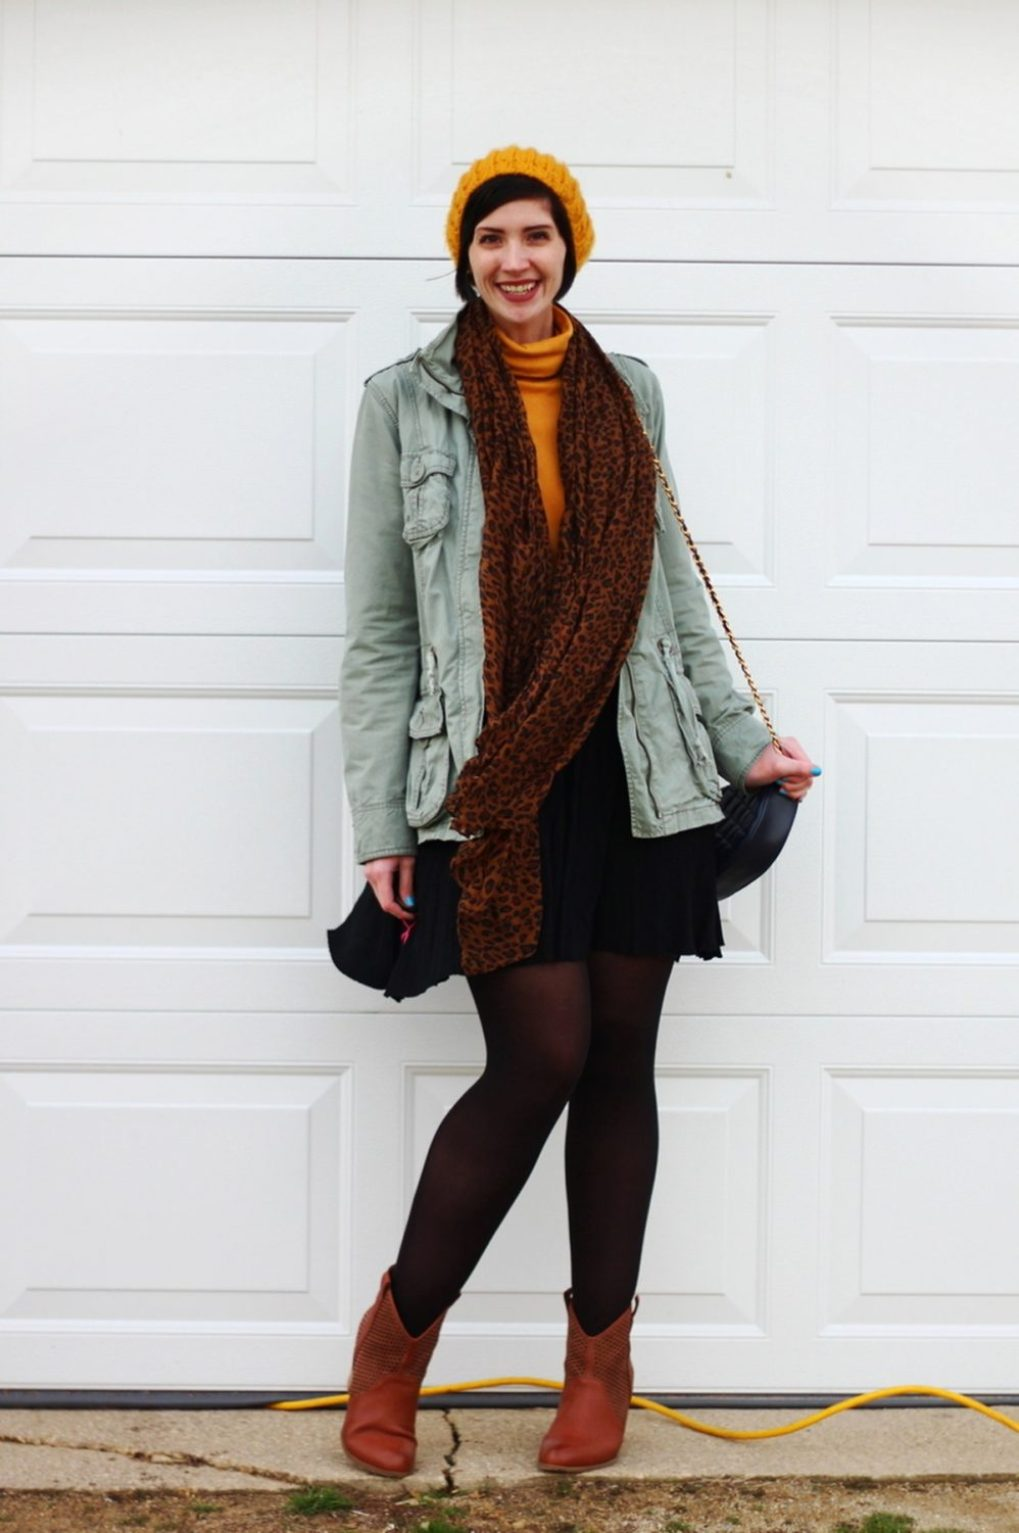 Outfit: mustard yellow turtleneck, olive green utility jacket, leopard print scarf, yellow knit hat, black skater skirt, black tights, cognac colored boots, navy blue quilted purse